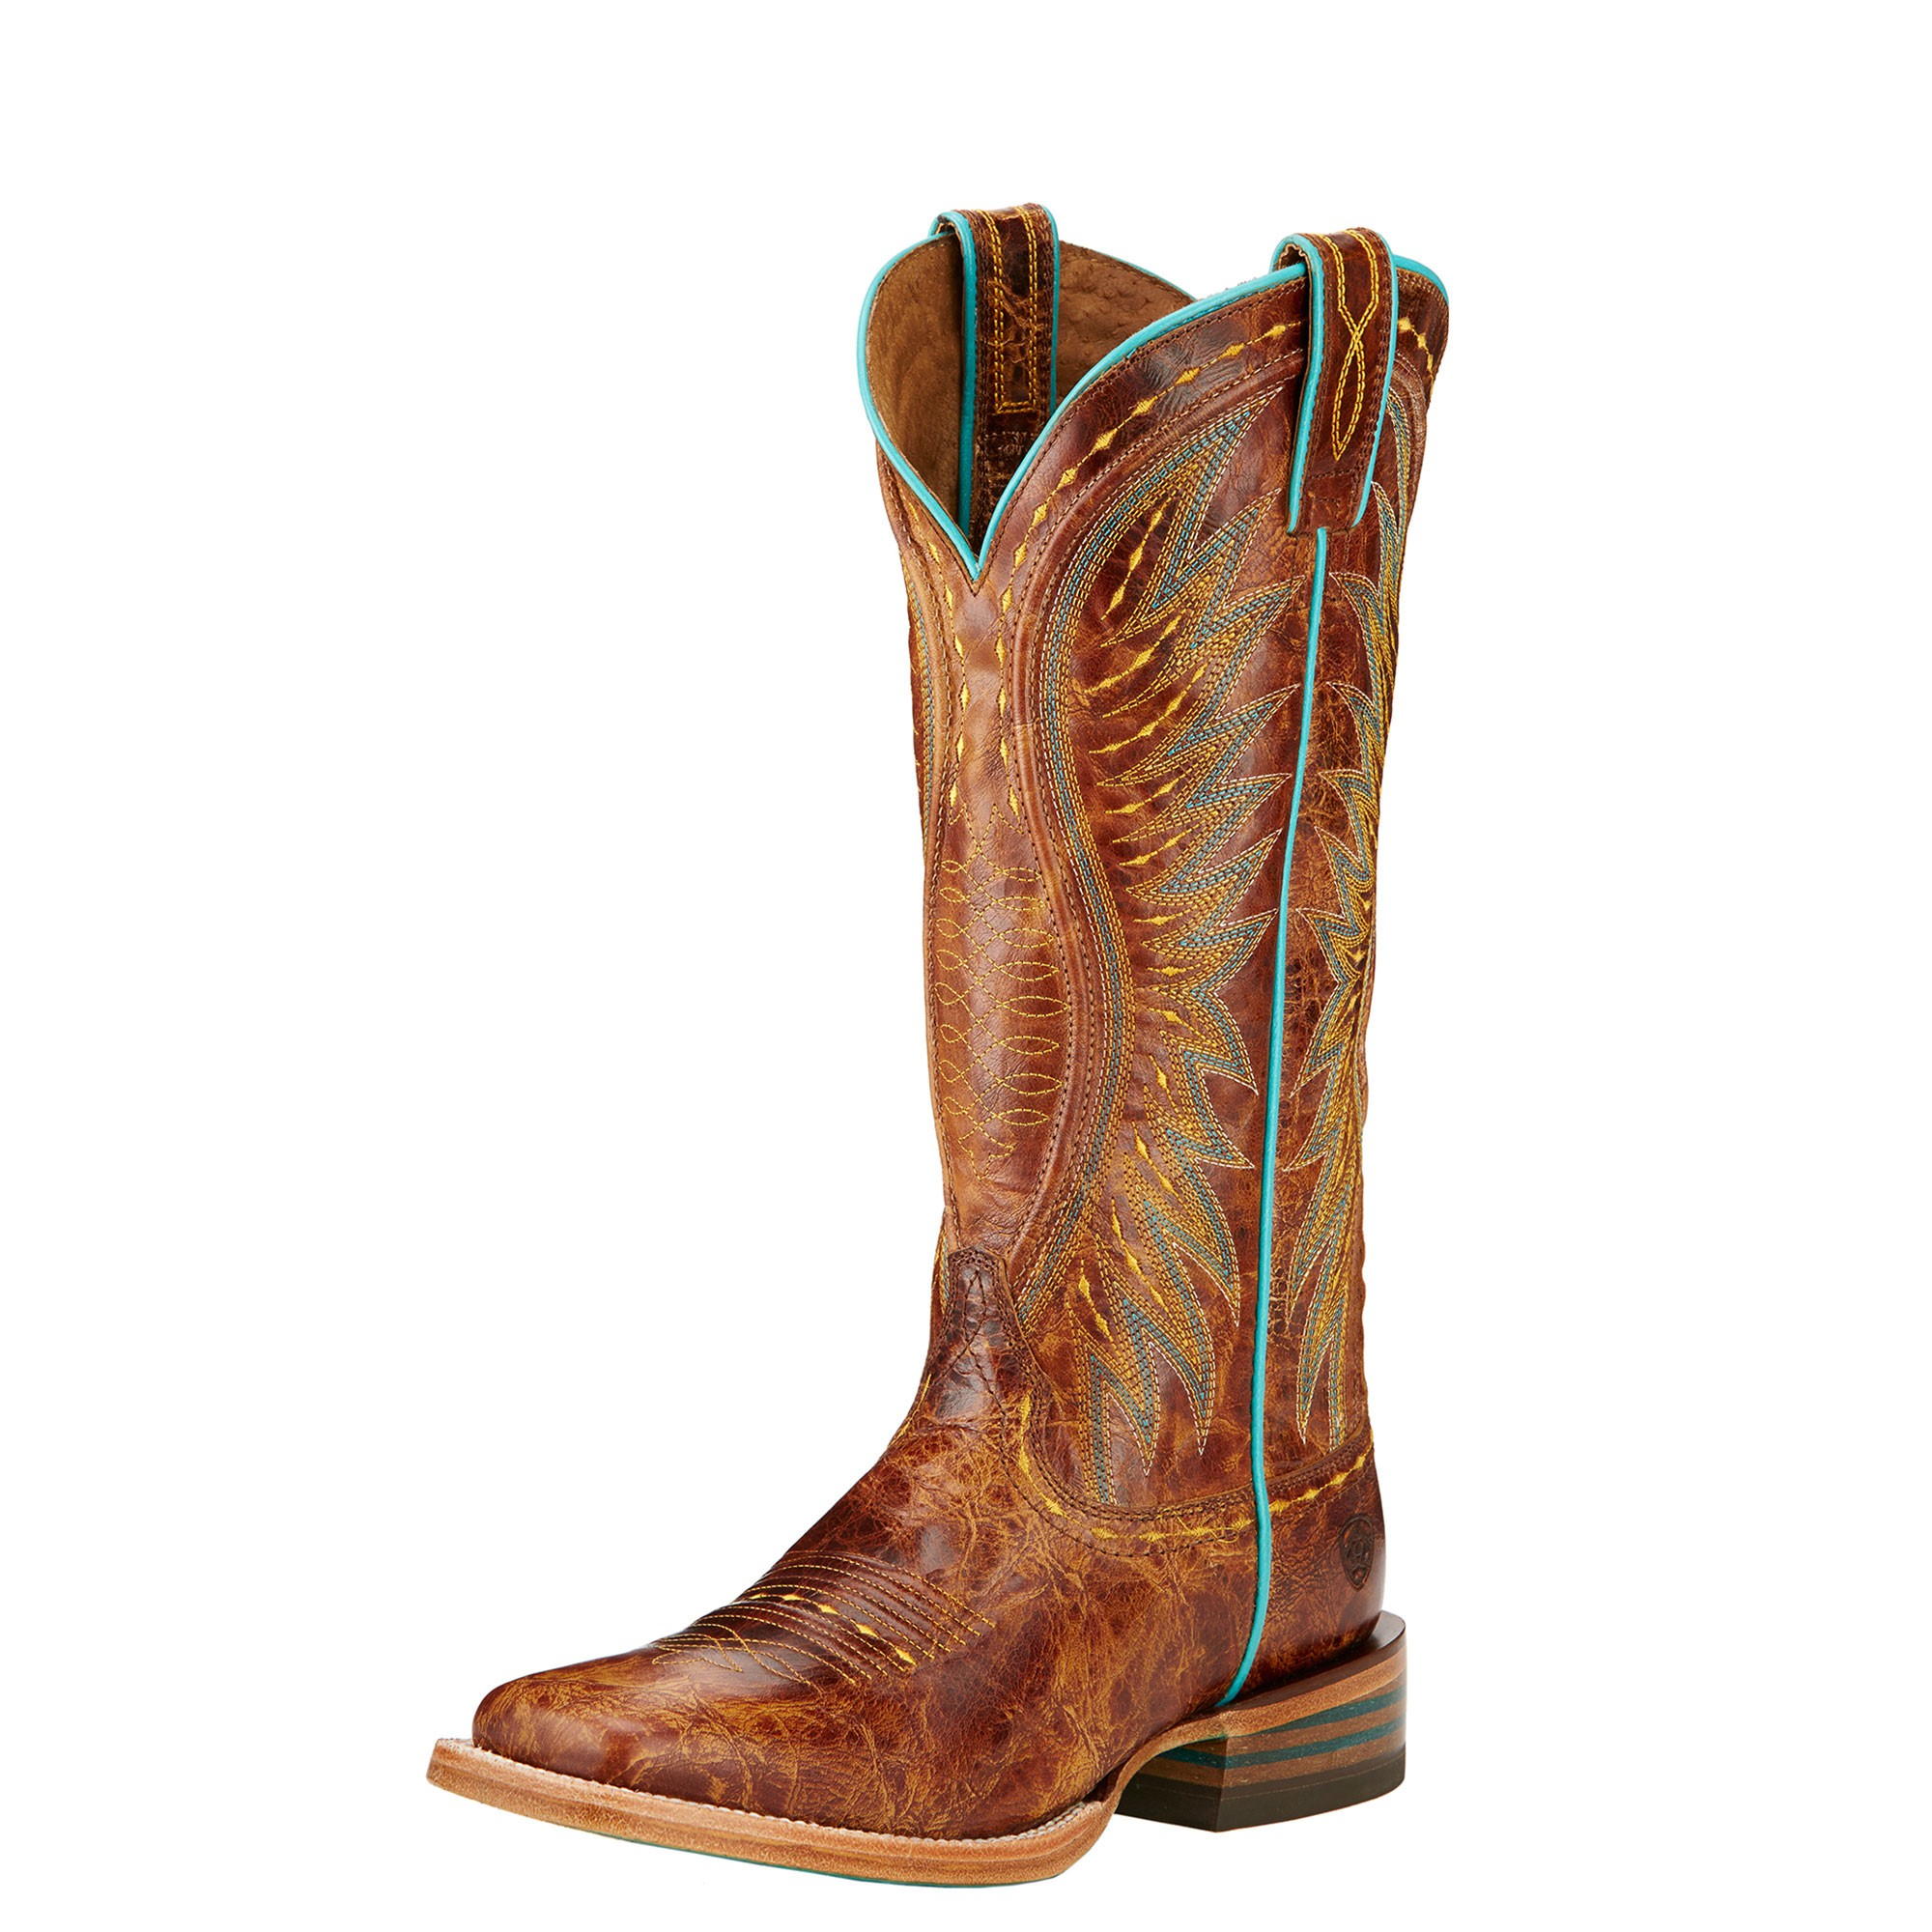 Womens Fashion Cowboy Boots TbBcEqJf